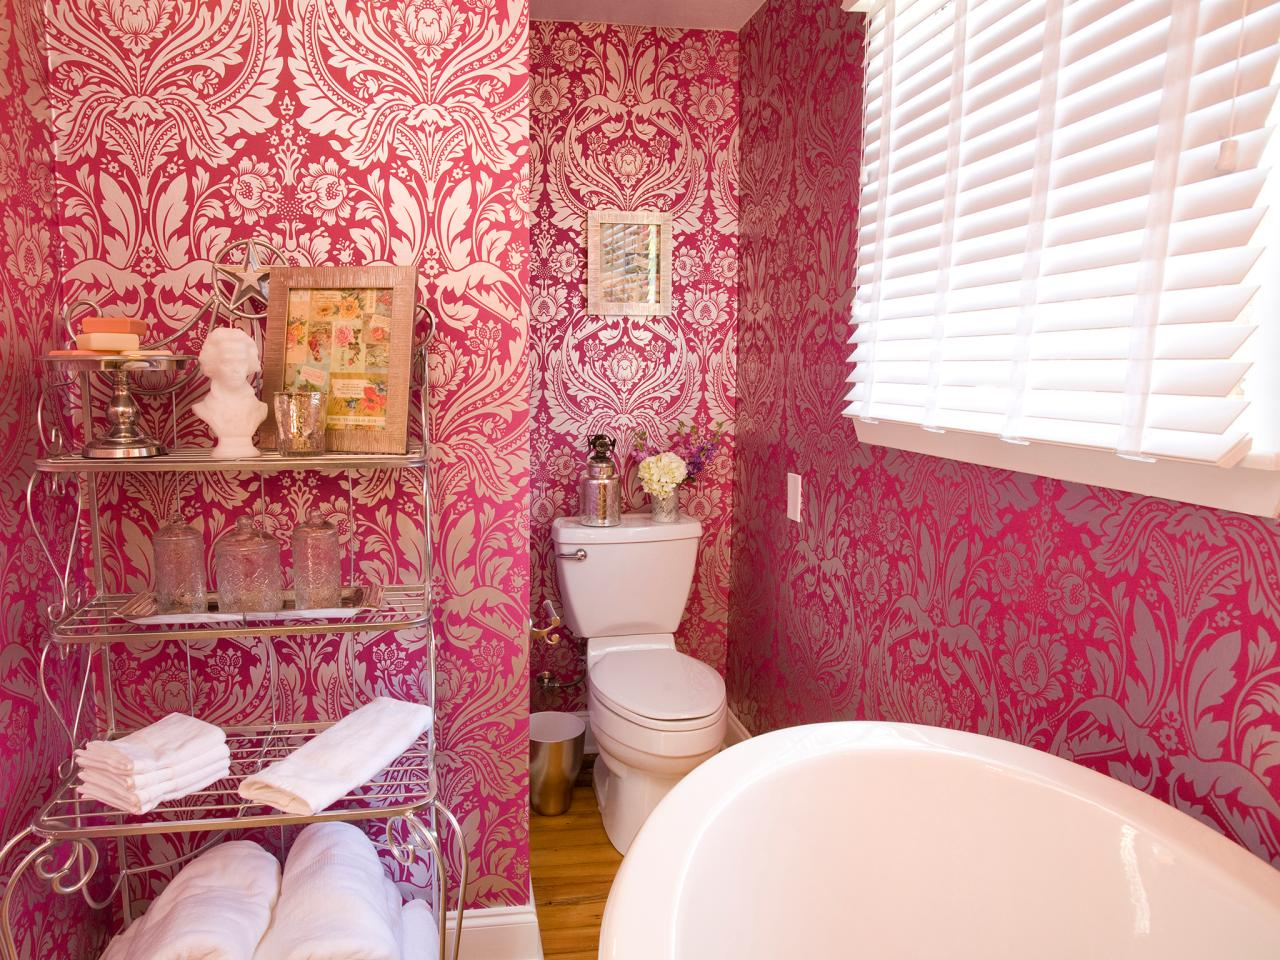 HPBRS408H_pink-wallpaper-bathroom-french_4x3.jpg.rend.hgtvcom.1280.960